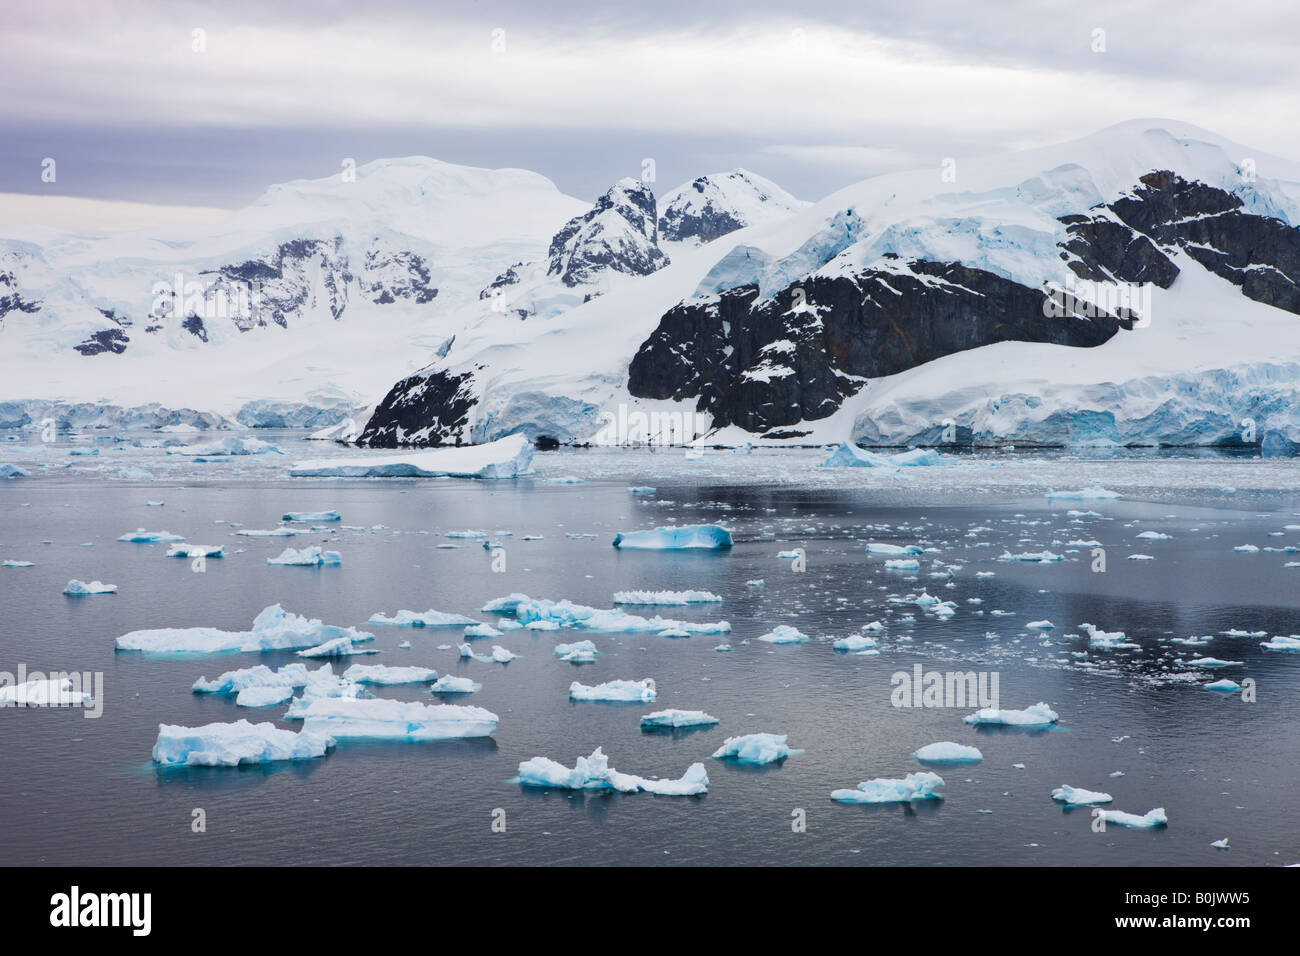 Icebergs glaciers and mountains at Paradise Harbour Antarctica - Stock Image